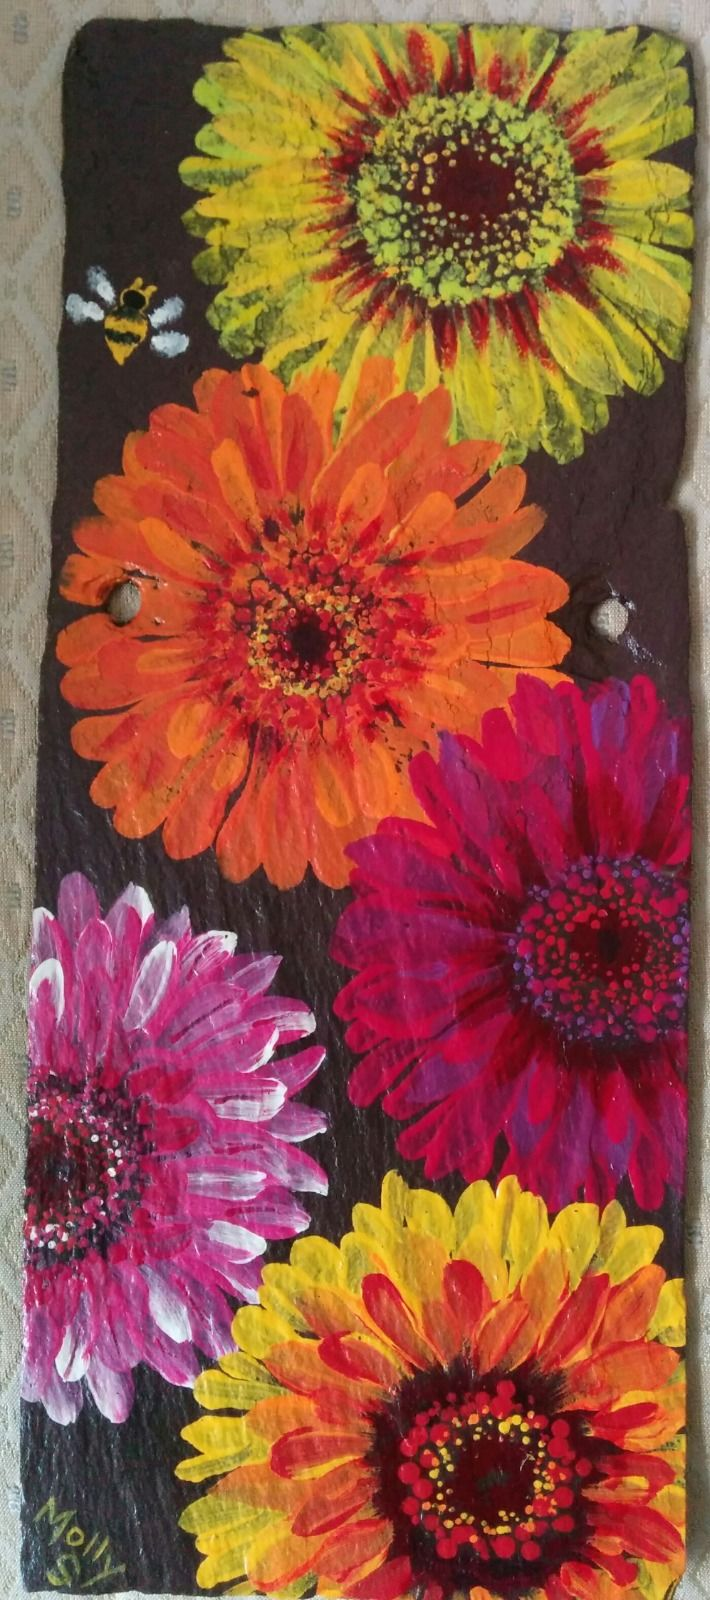 gerbera, flowers, slate, hand painted craft. Transvaal daisy